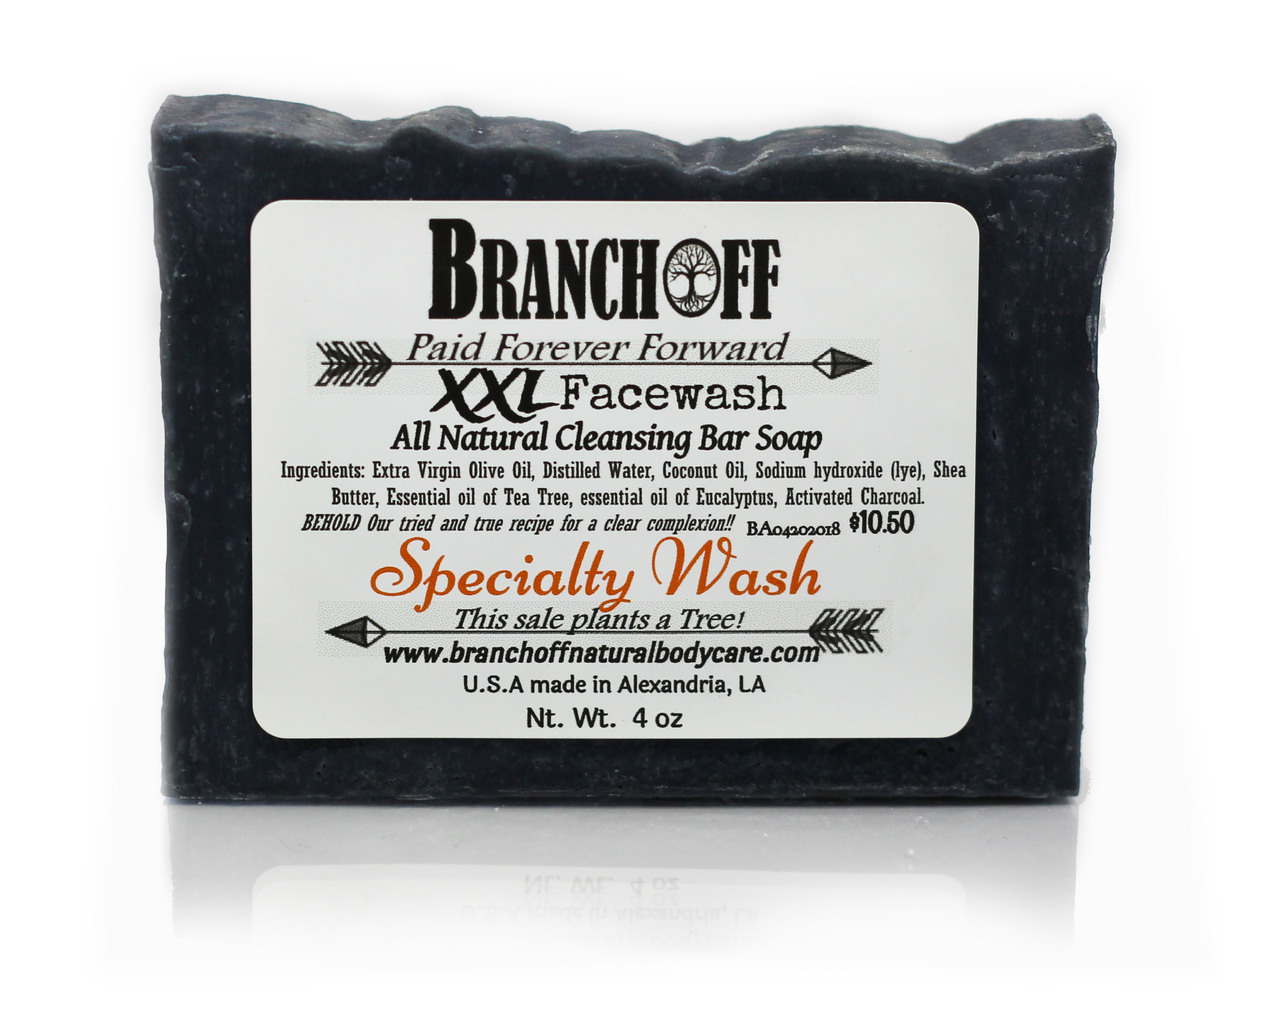 XXL Activated Charcoal Facewash **OUT OF STOCK**